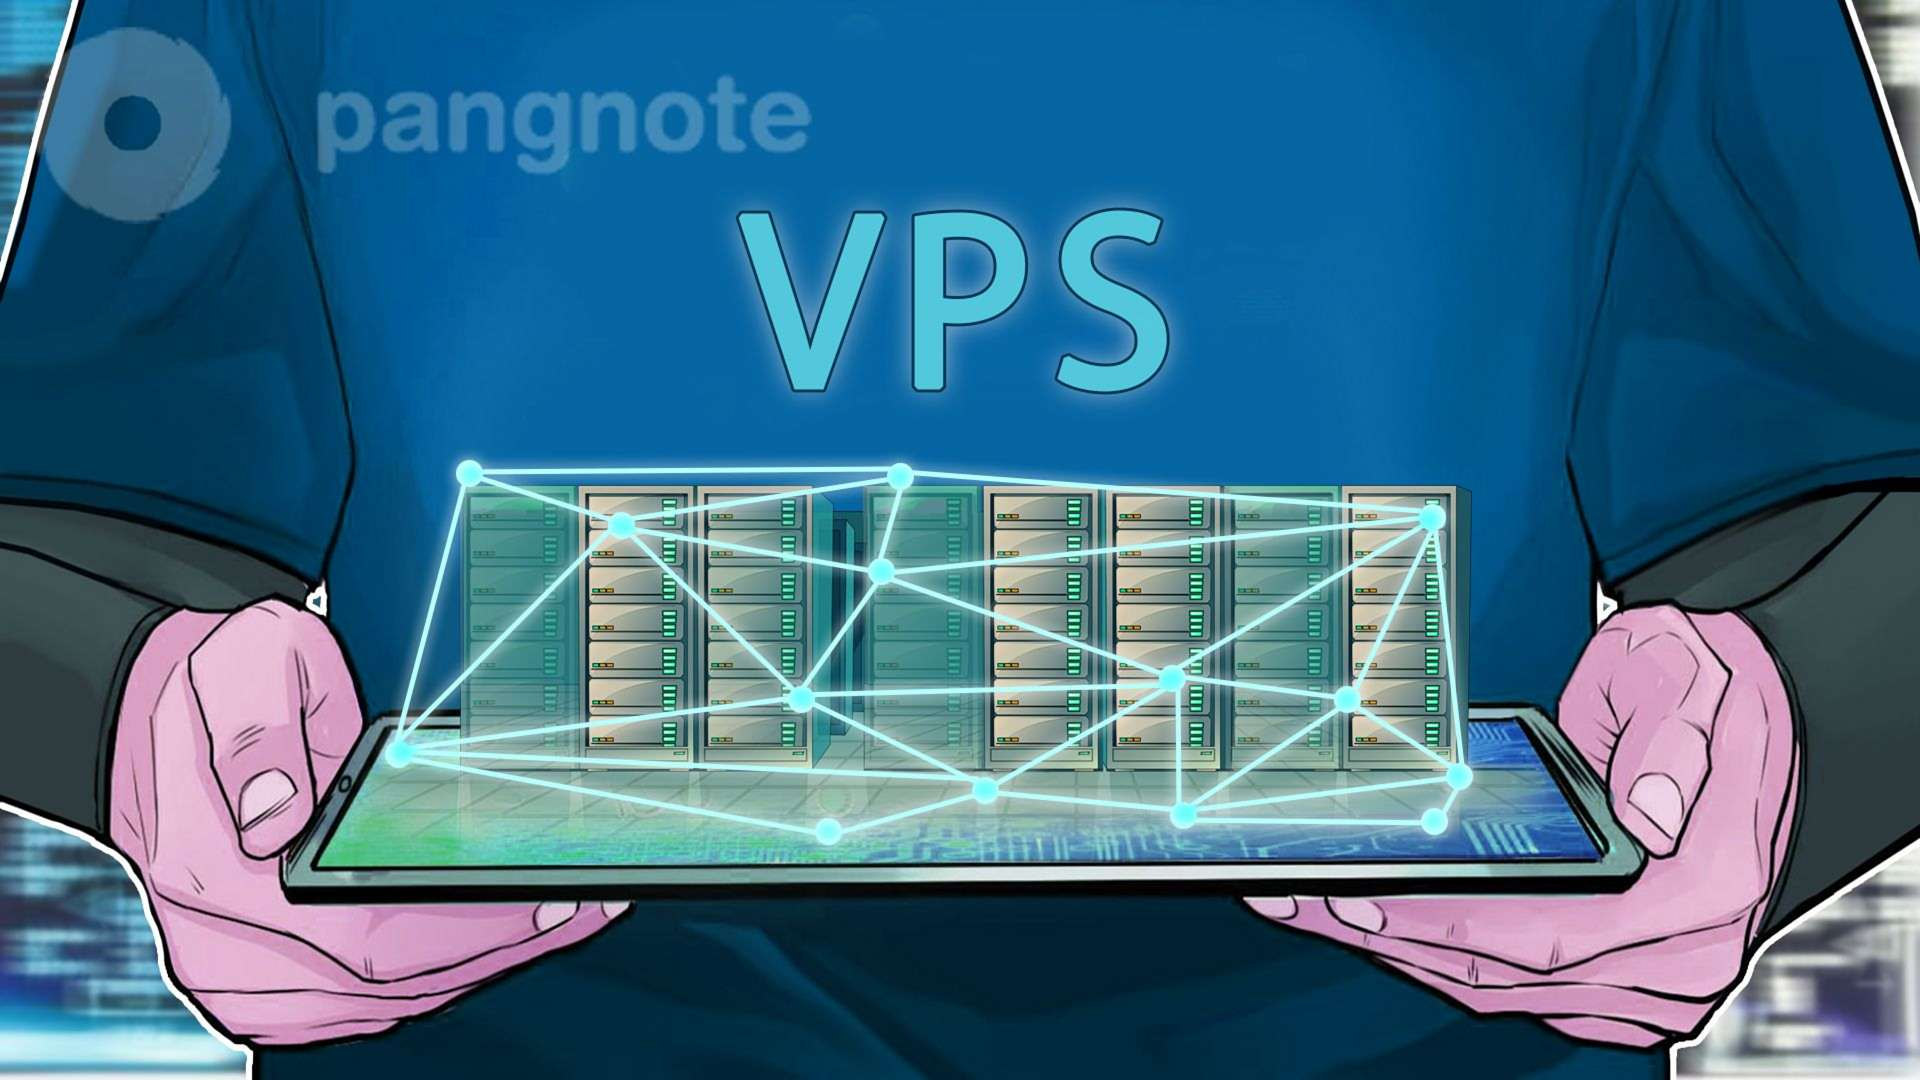 What is VPS and usage tips?